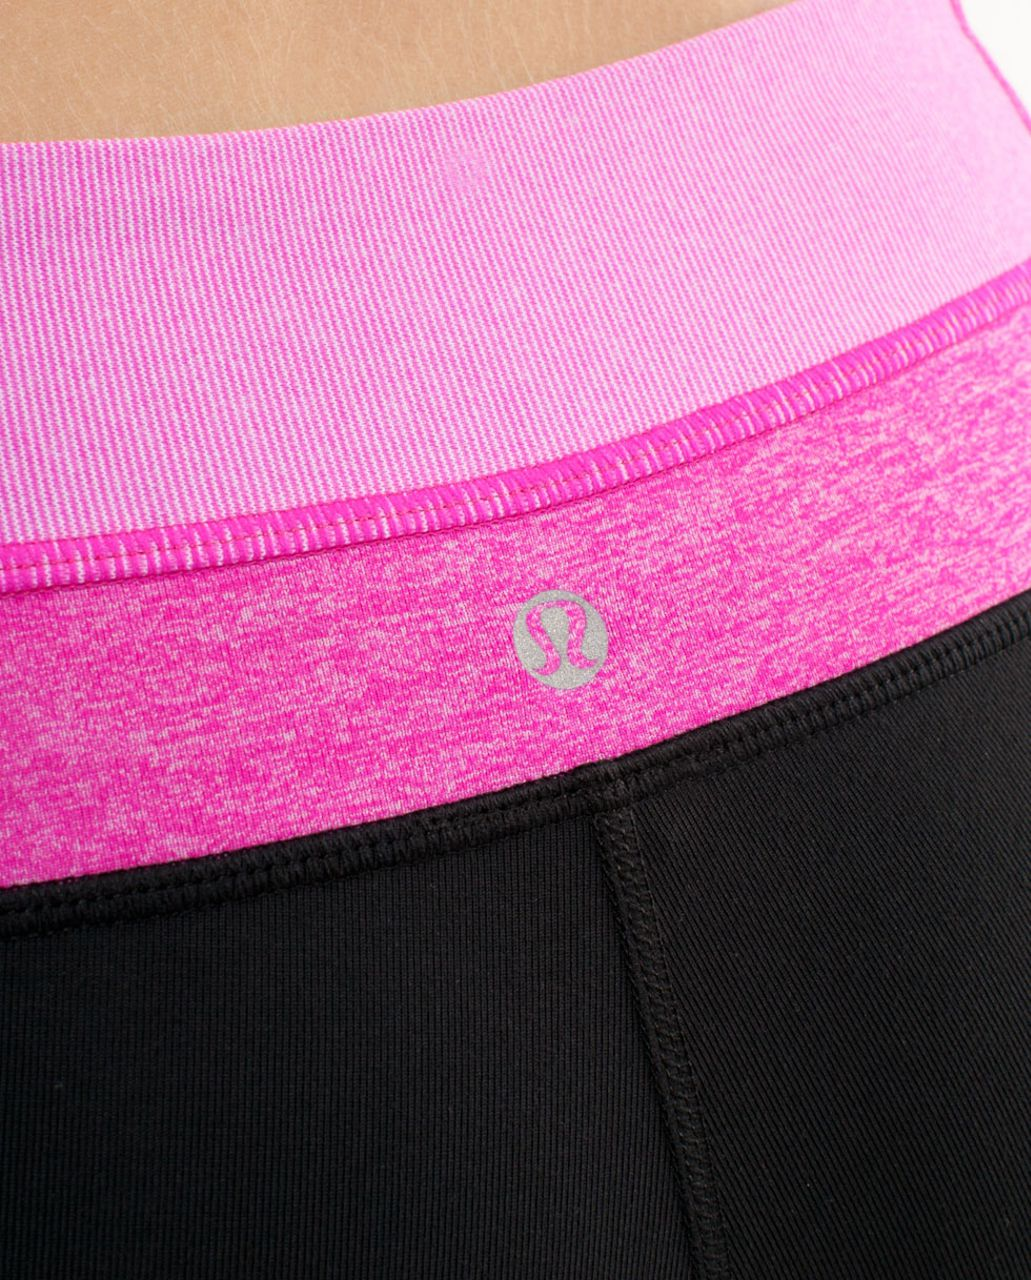 Lululemon Groove Pant (Tall) - Black /  Paris Pink White Microstripe